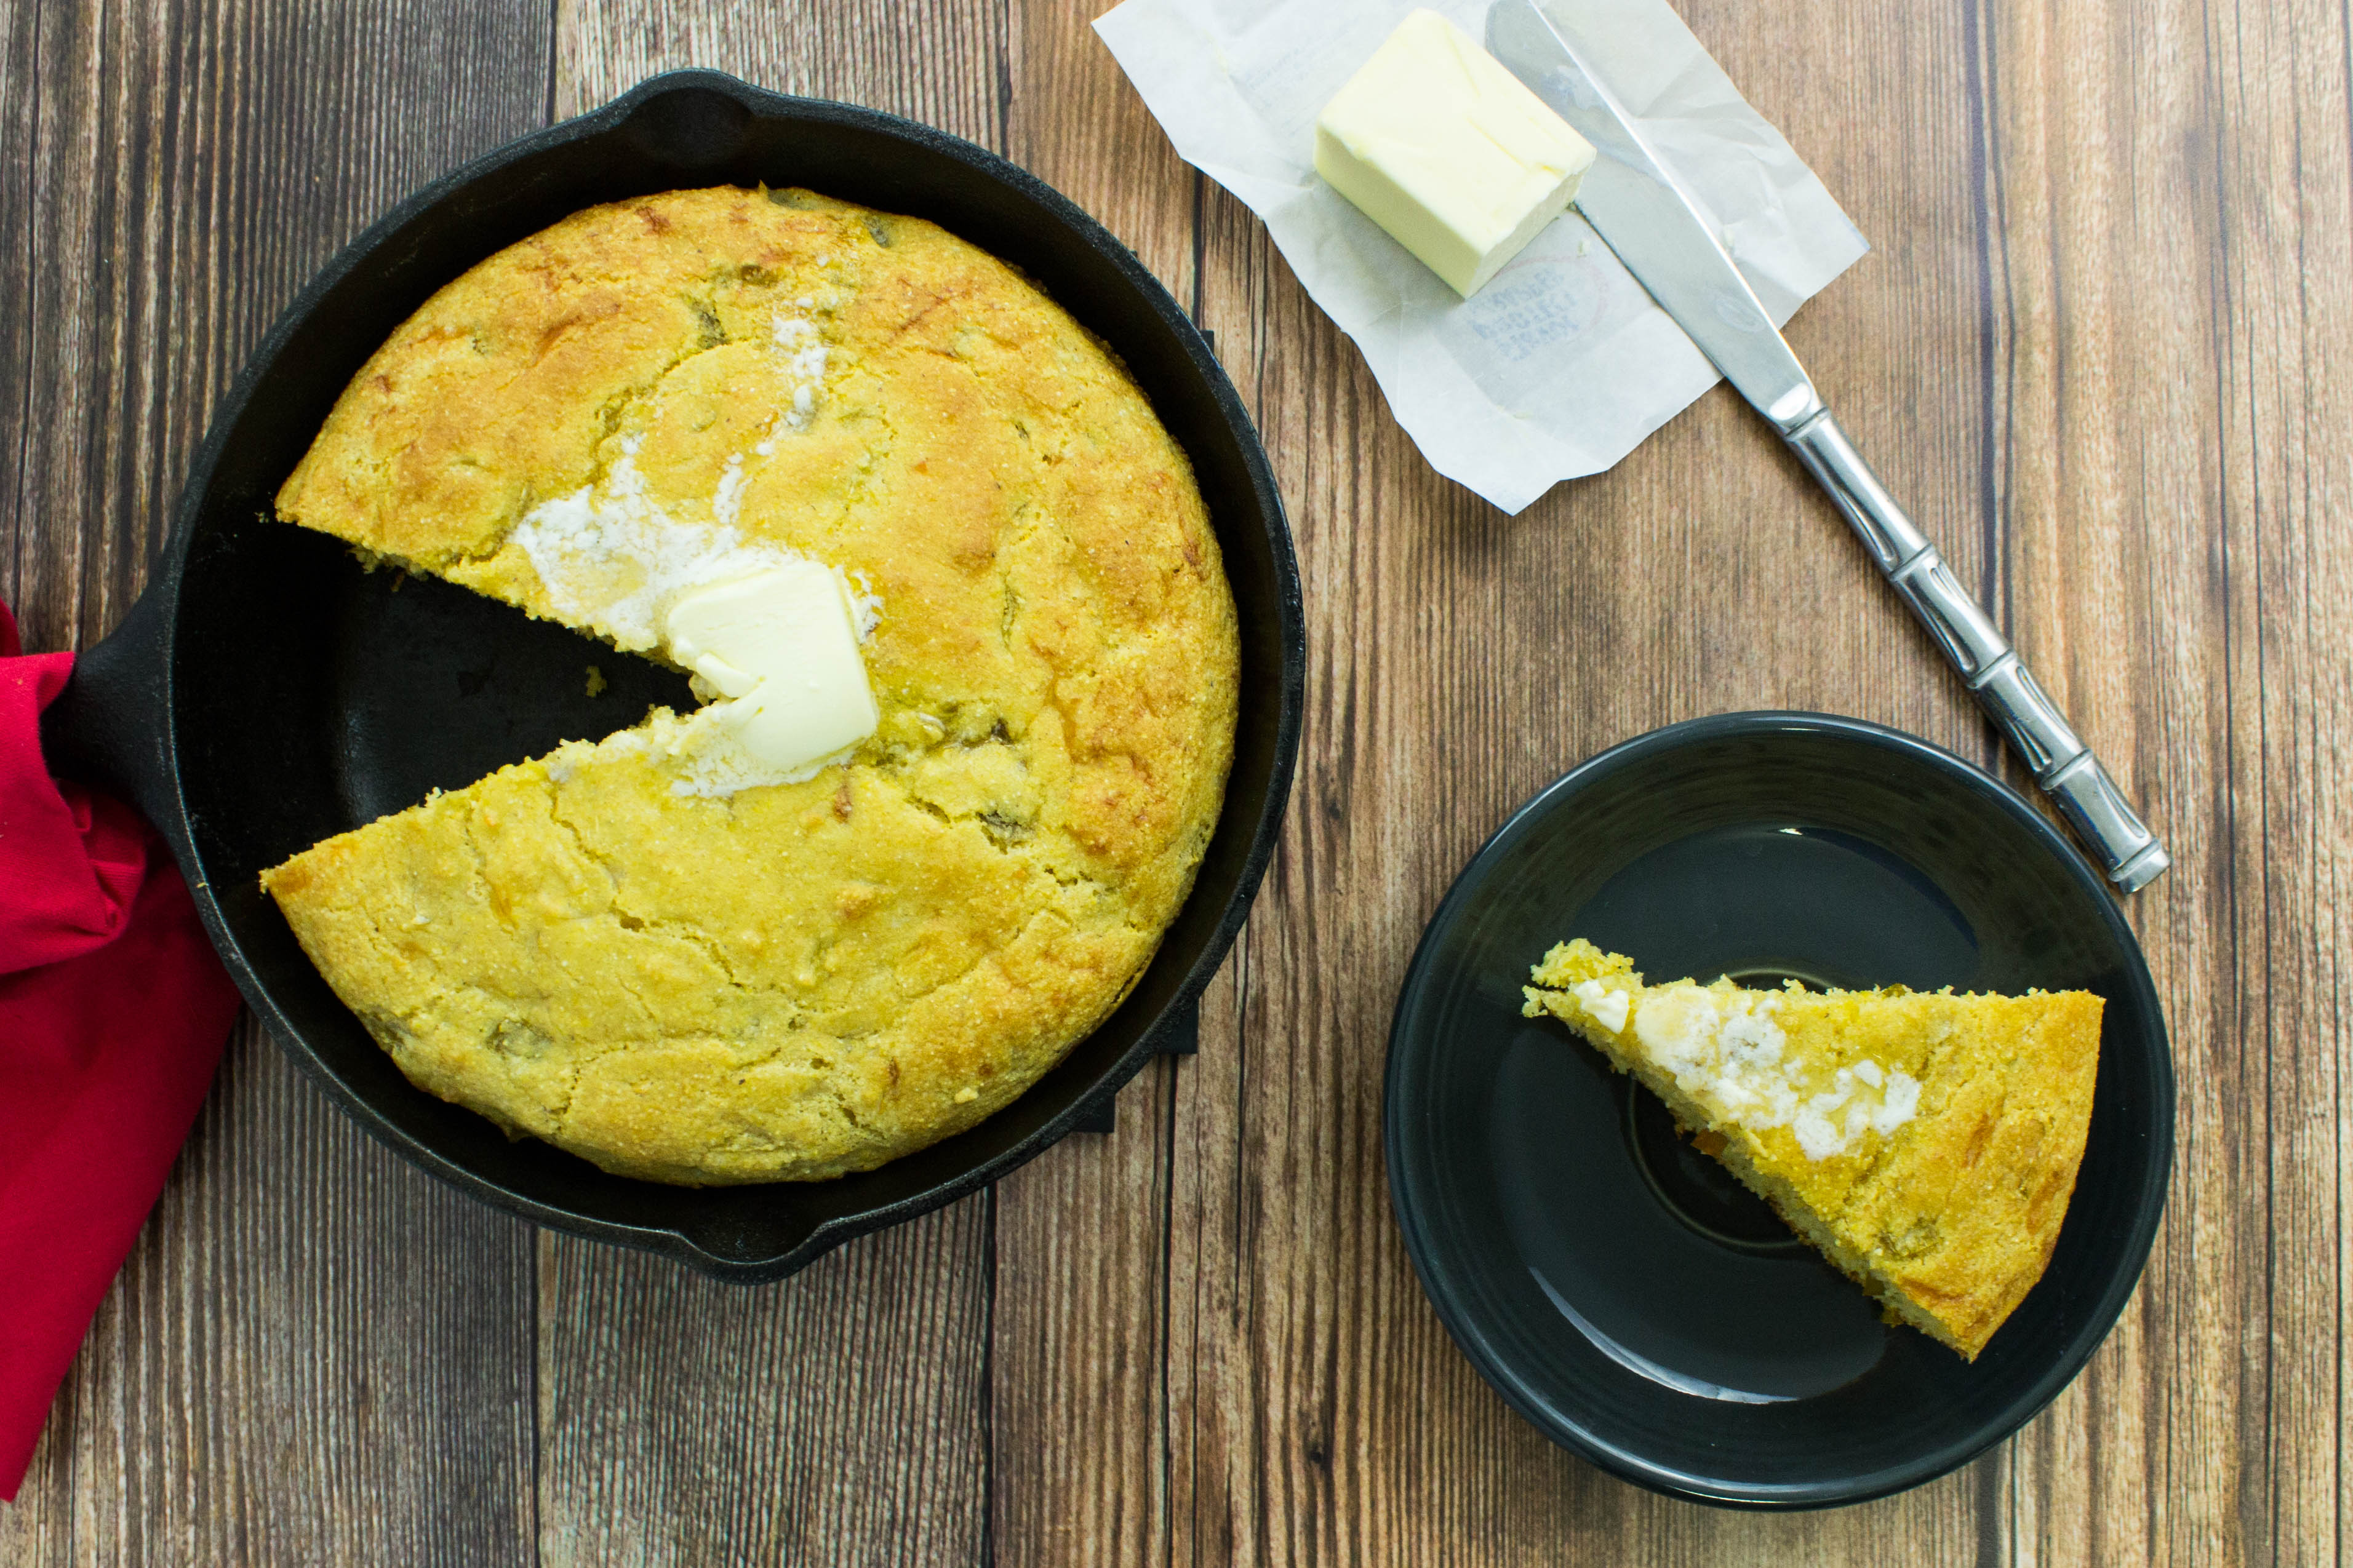 Skillet Green Chili Cornbread- Fluffy cornbread with layers of cheese & green chilies! Unique & healthy twist on traditional cornbread. Weight Watcher friendly. www.bitesofflavor.com